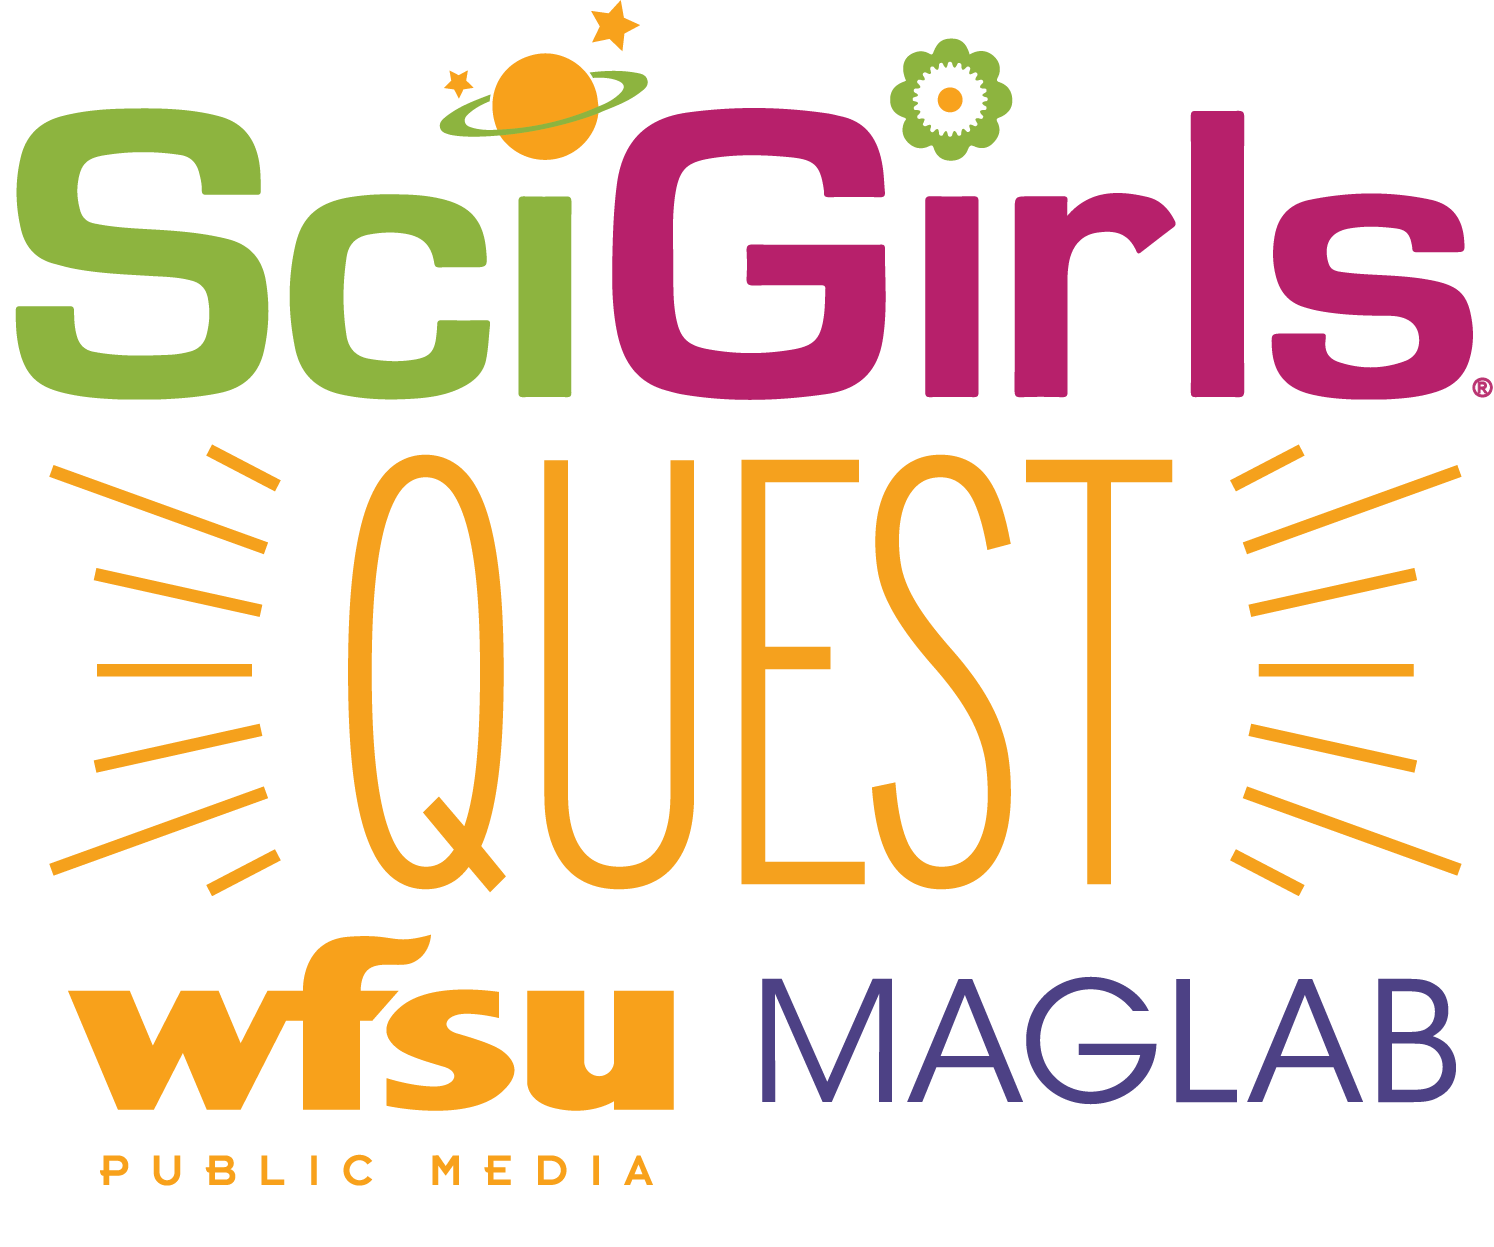 SciGirlsQuest